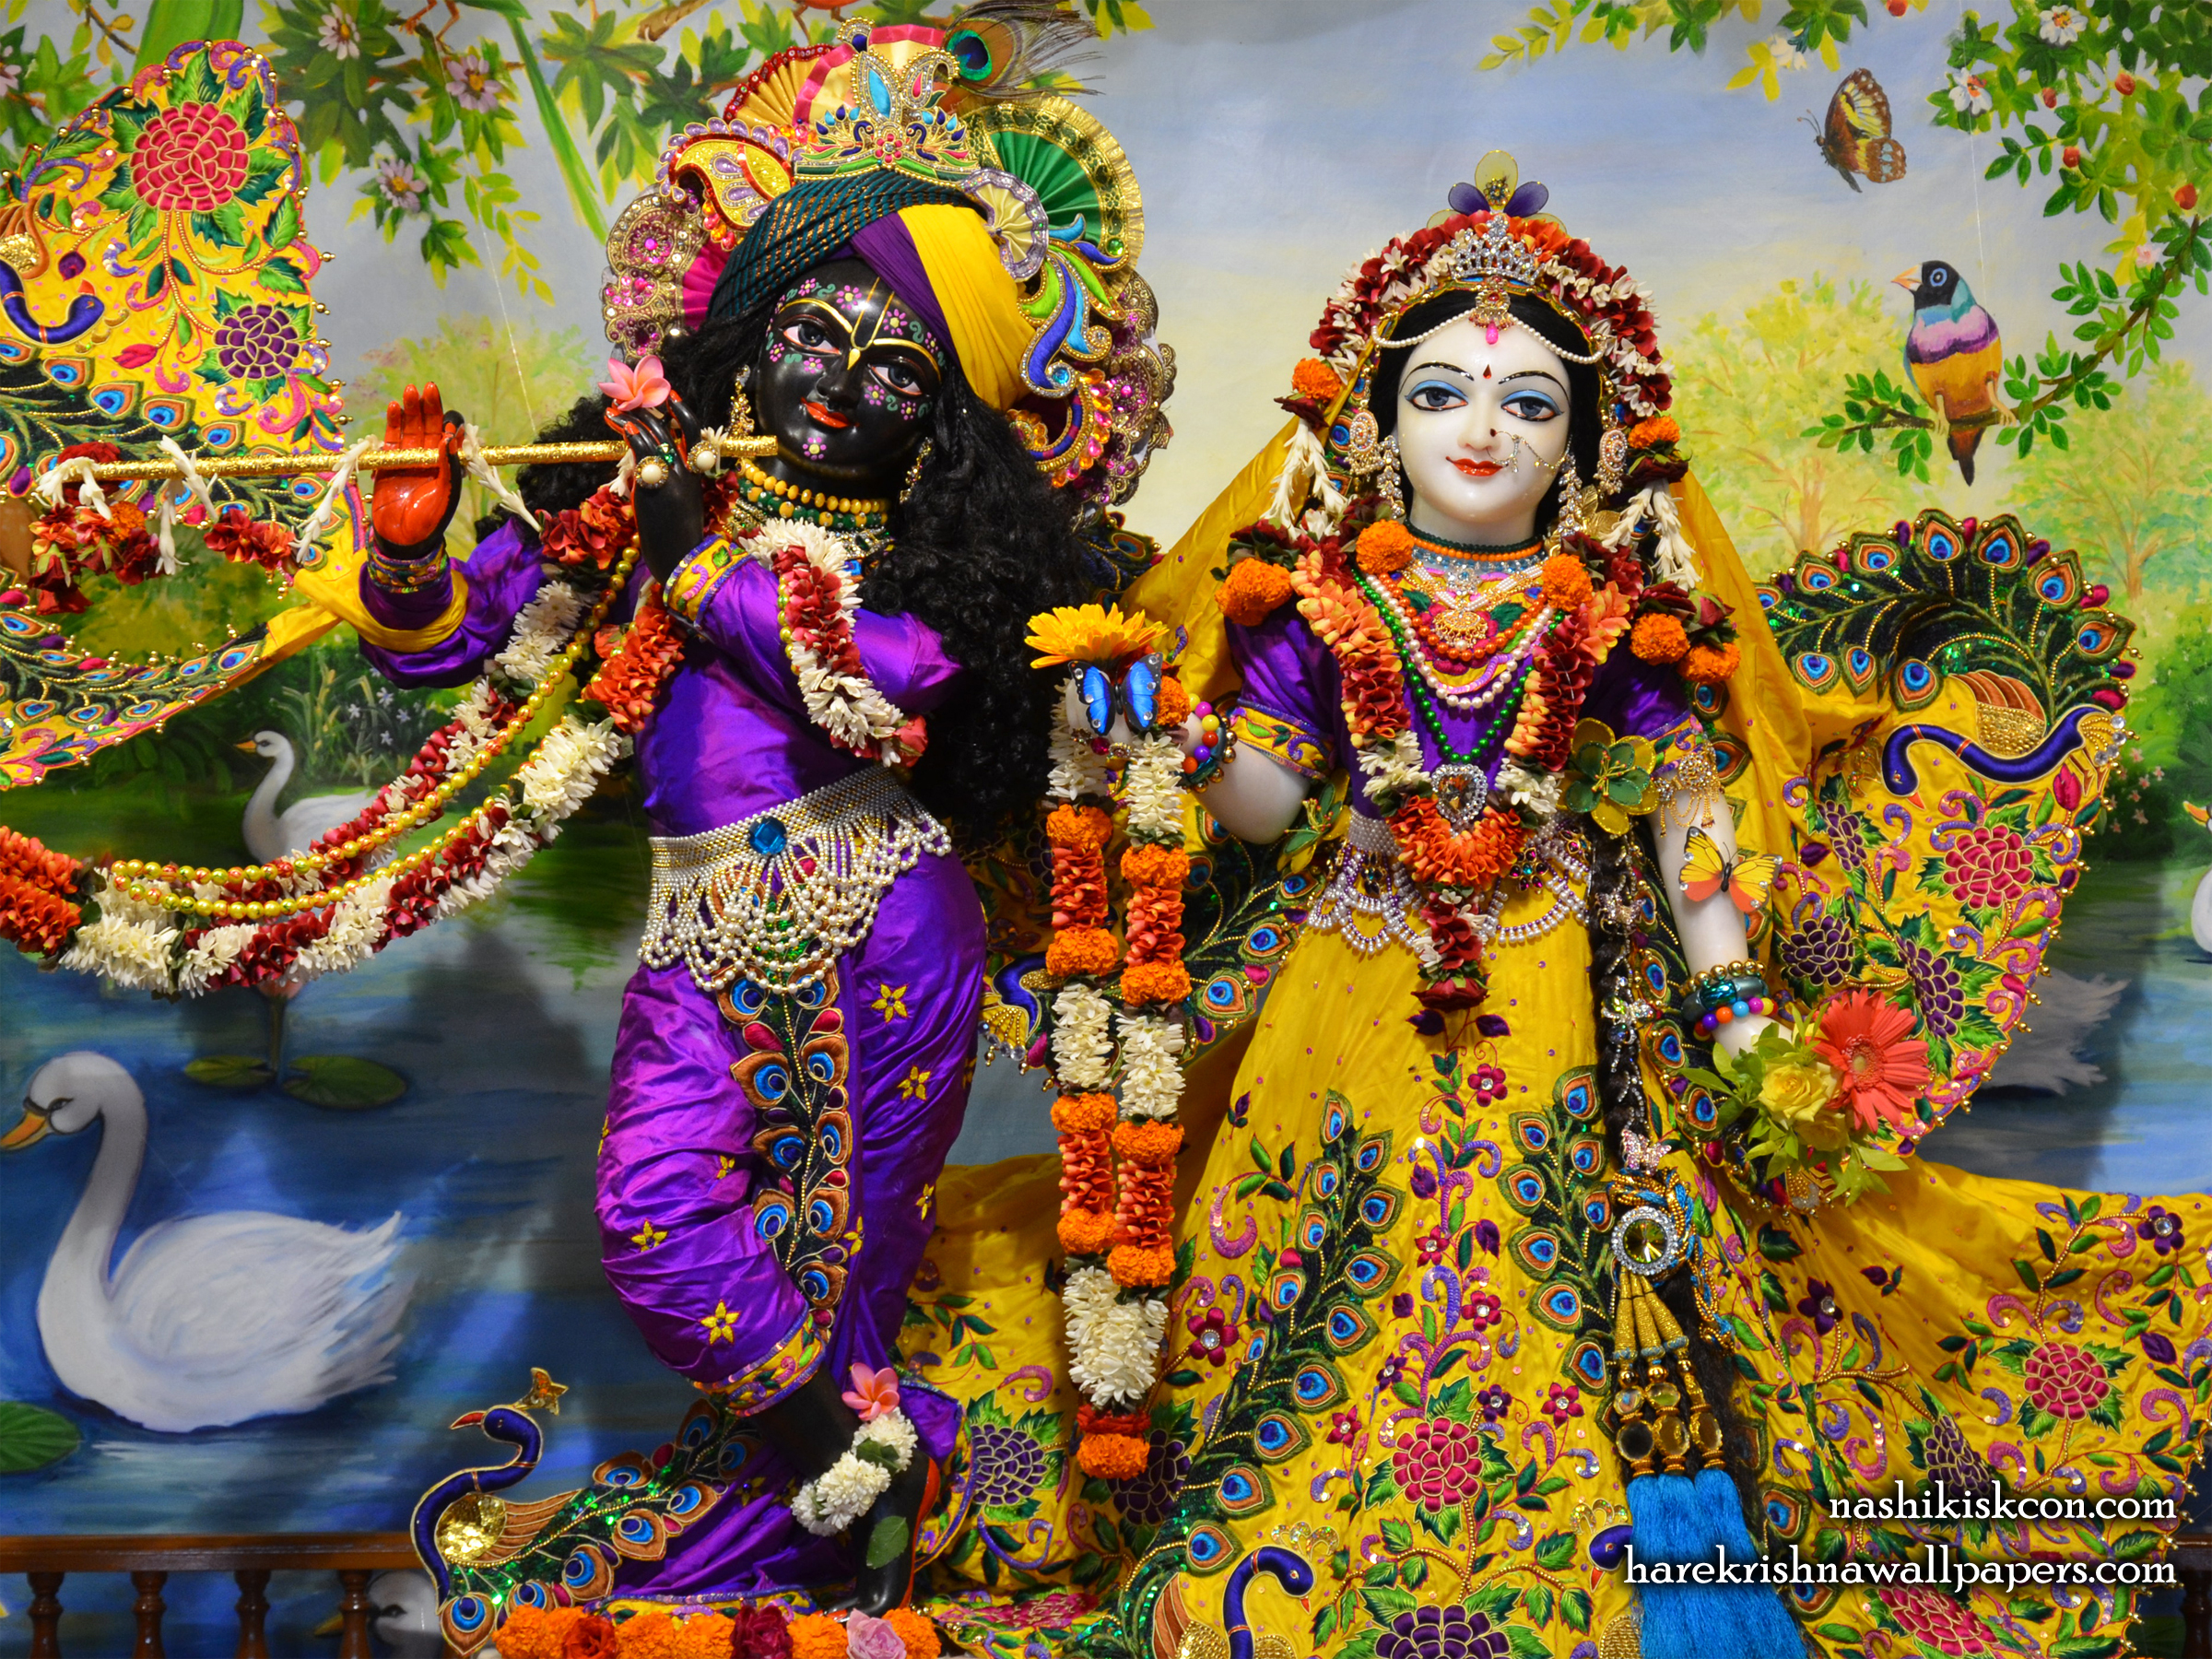 Sri Sri Radha Madan Gopal Wallpaper (009) Size 2400x1800 Download